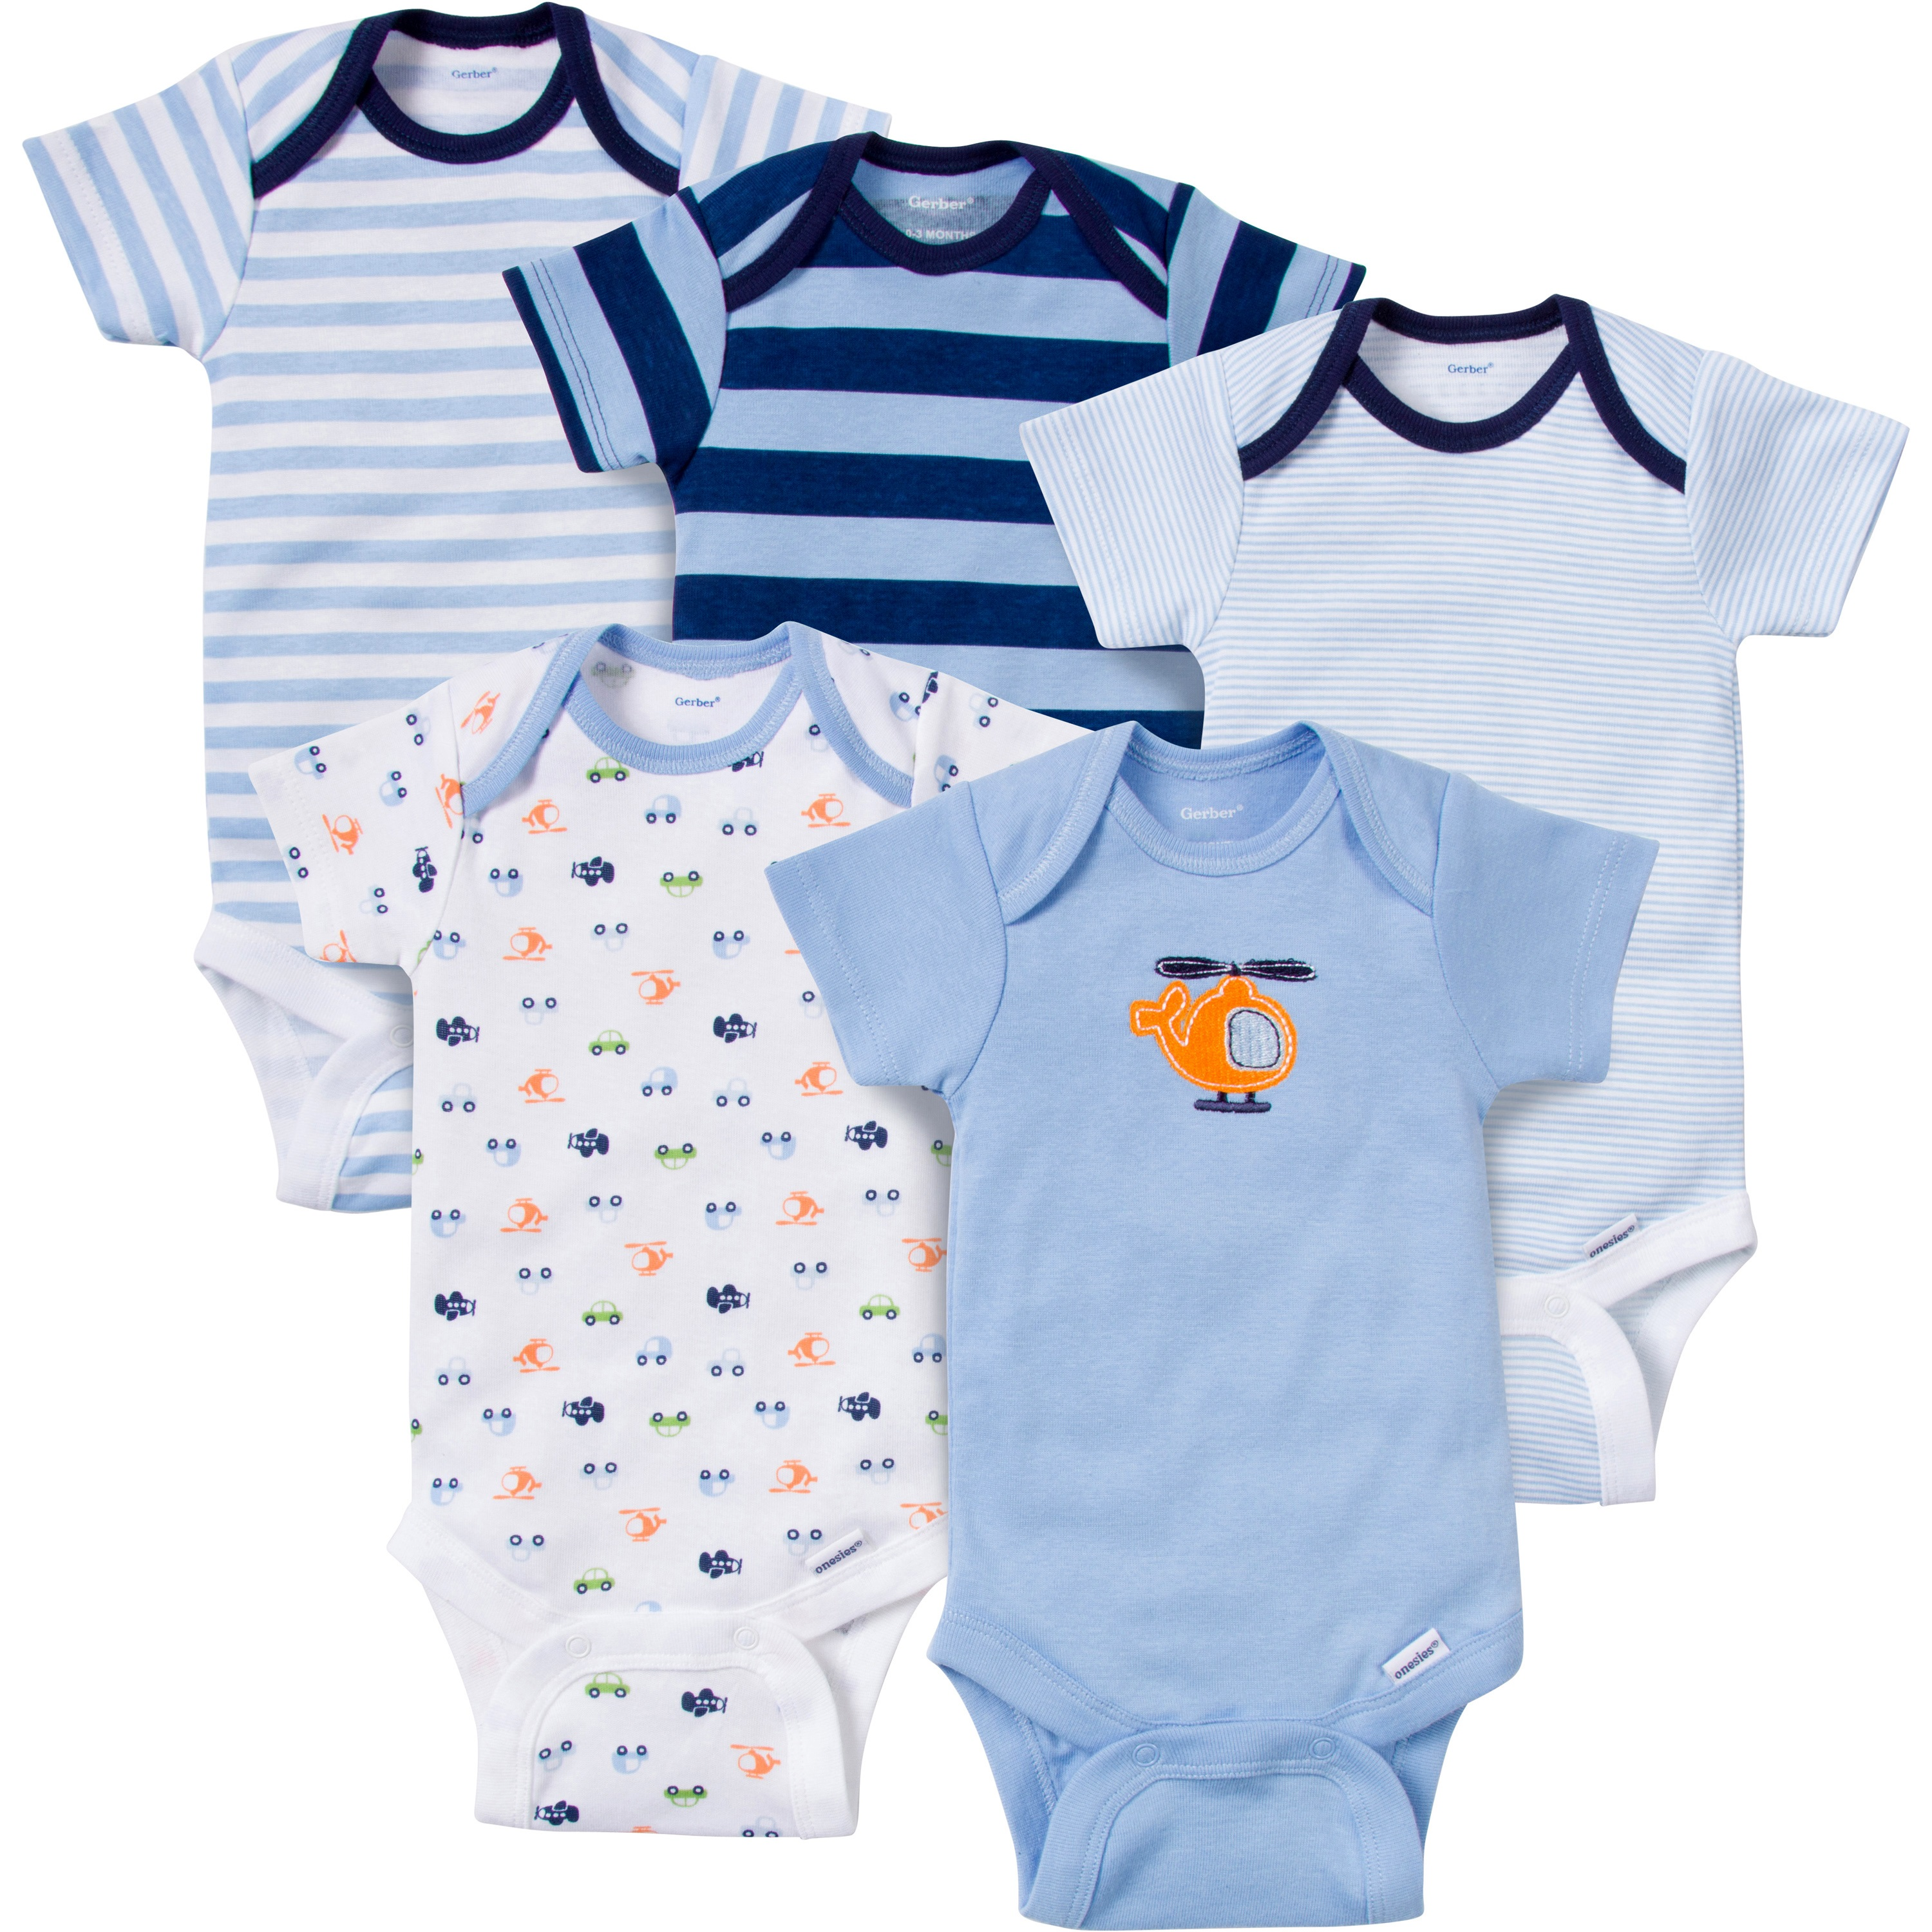 Gerber 5-Pack Colored Fashion Onesies, Boy